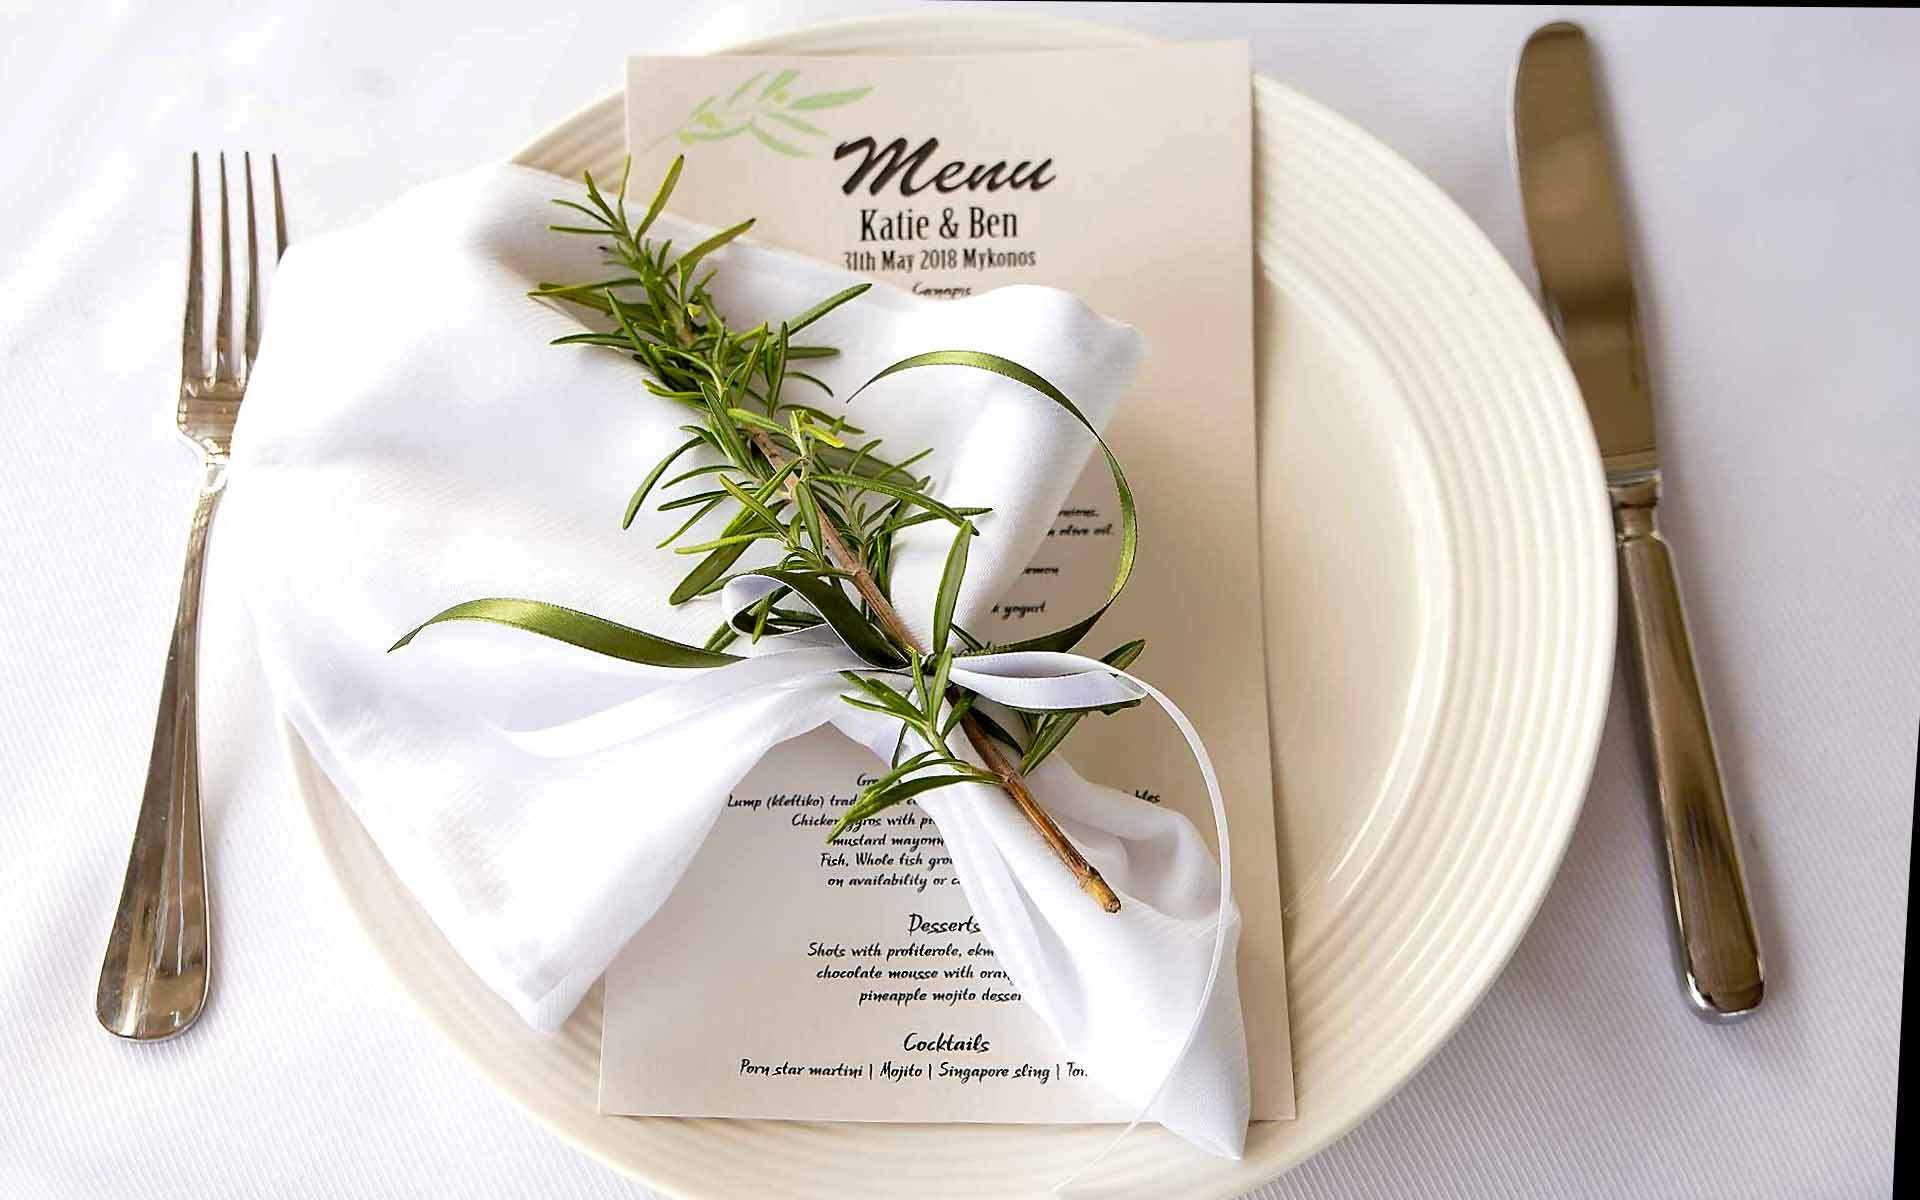 Wedding-Menu-In-Rosemary-by-Diamond-Events-Wedding-Event-planning-services